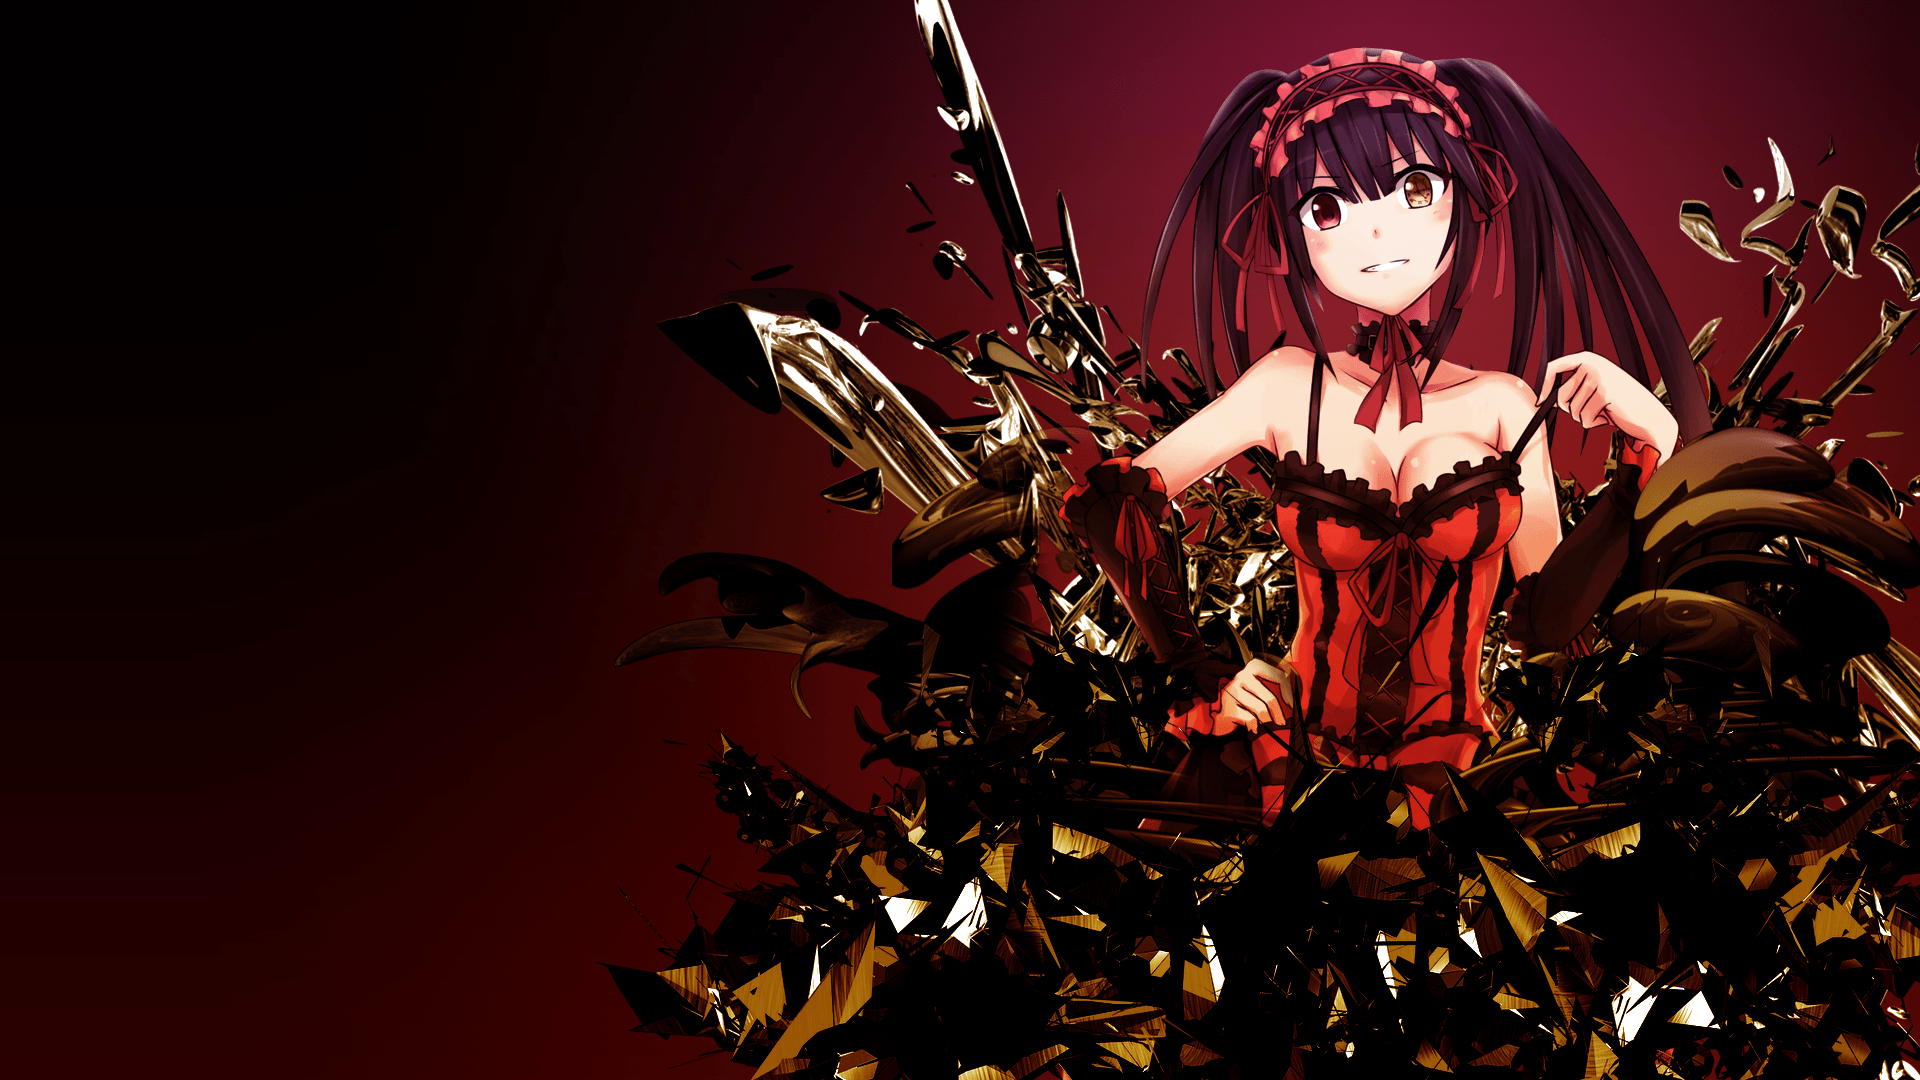 Kurumi Tokisaki Wallpapers Wallpaper Cave